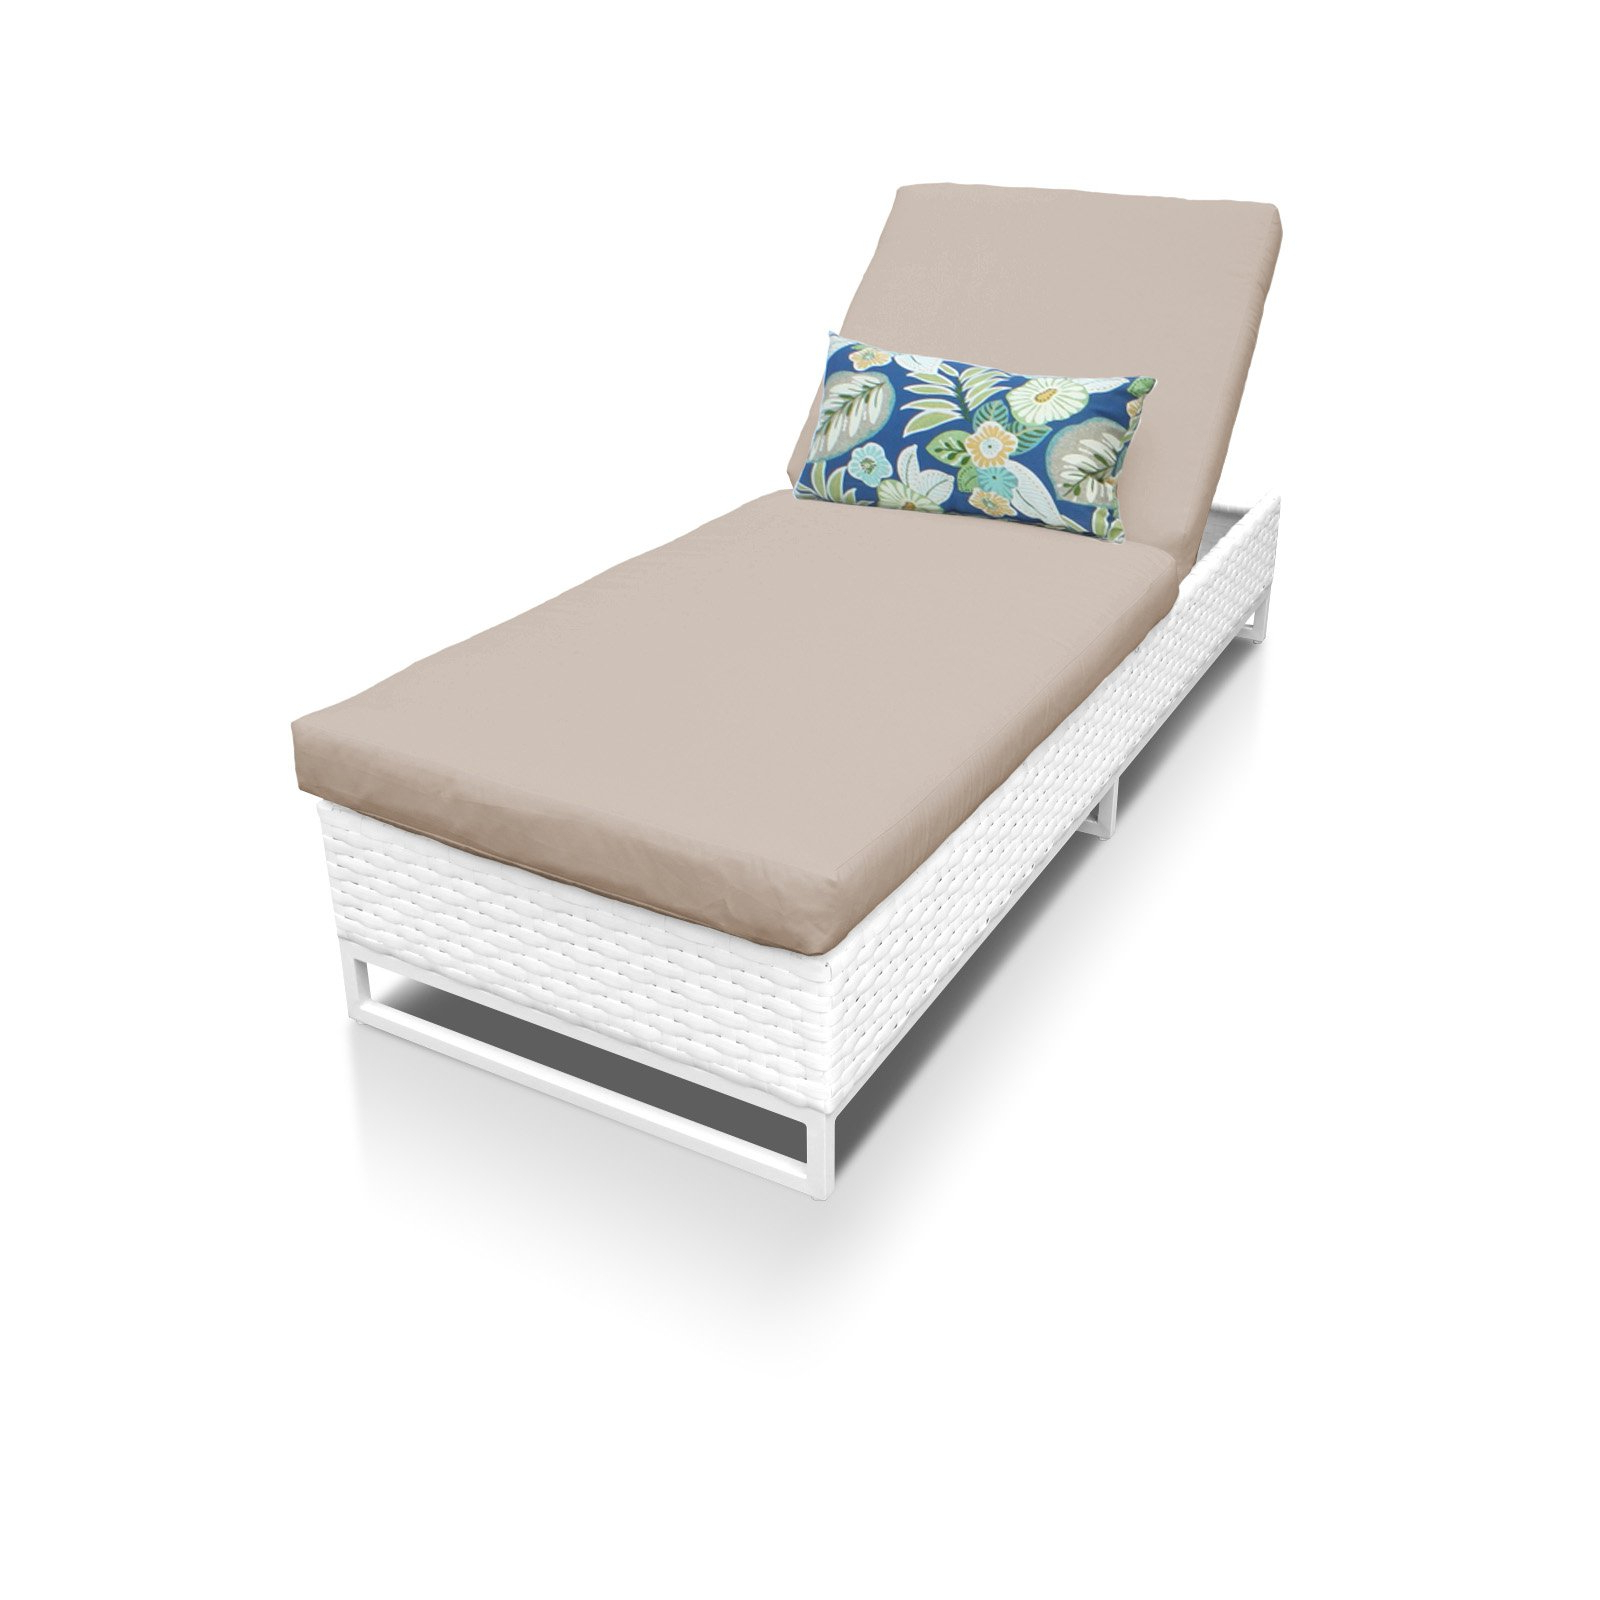 Well Known White Wicker Adjustable Chaise Loungers With Cushions In Outdoor Tk Classics Miami Adjustable Patio Chaise Lounge (View 15 of 25)